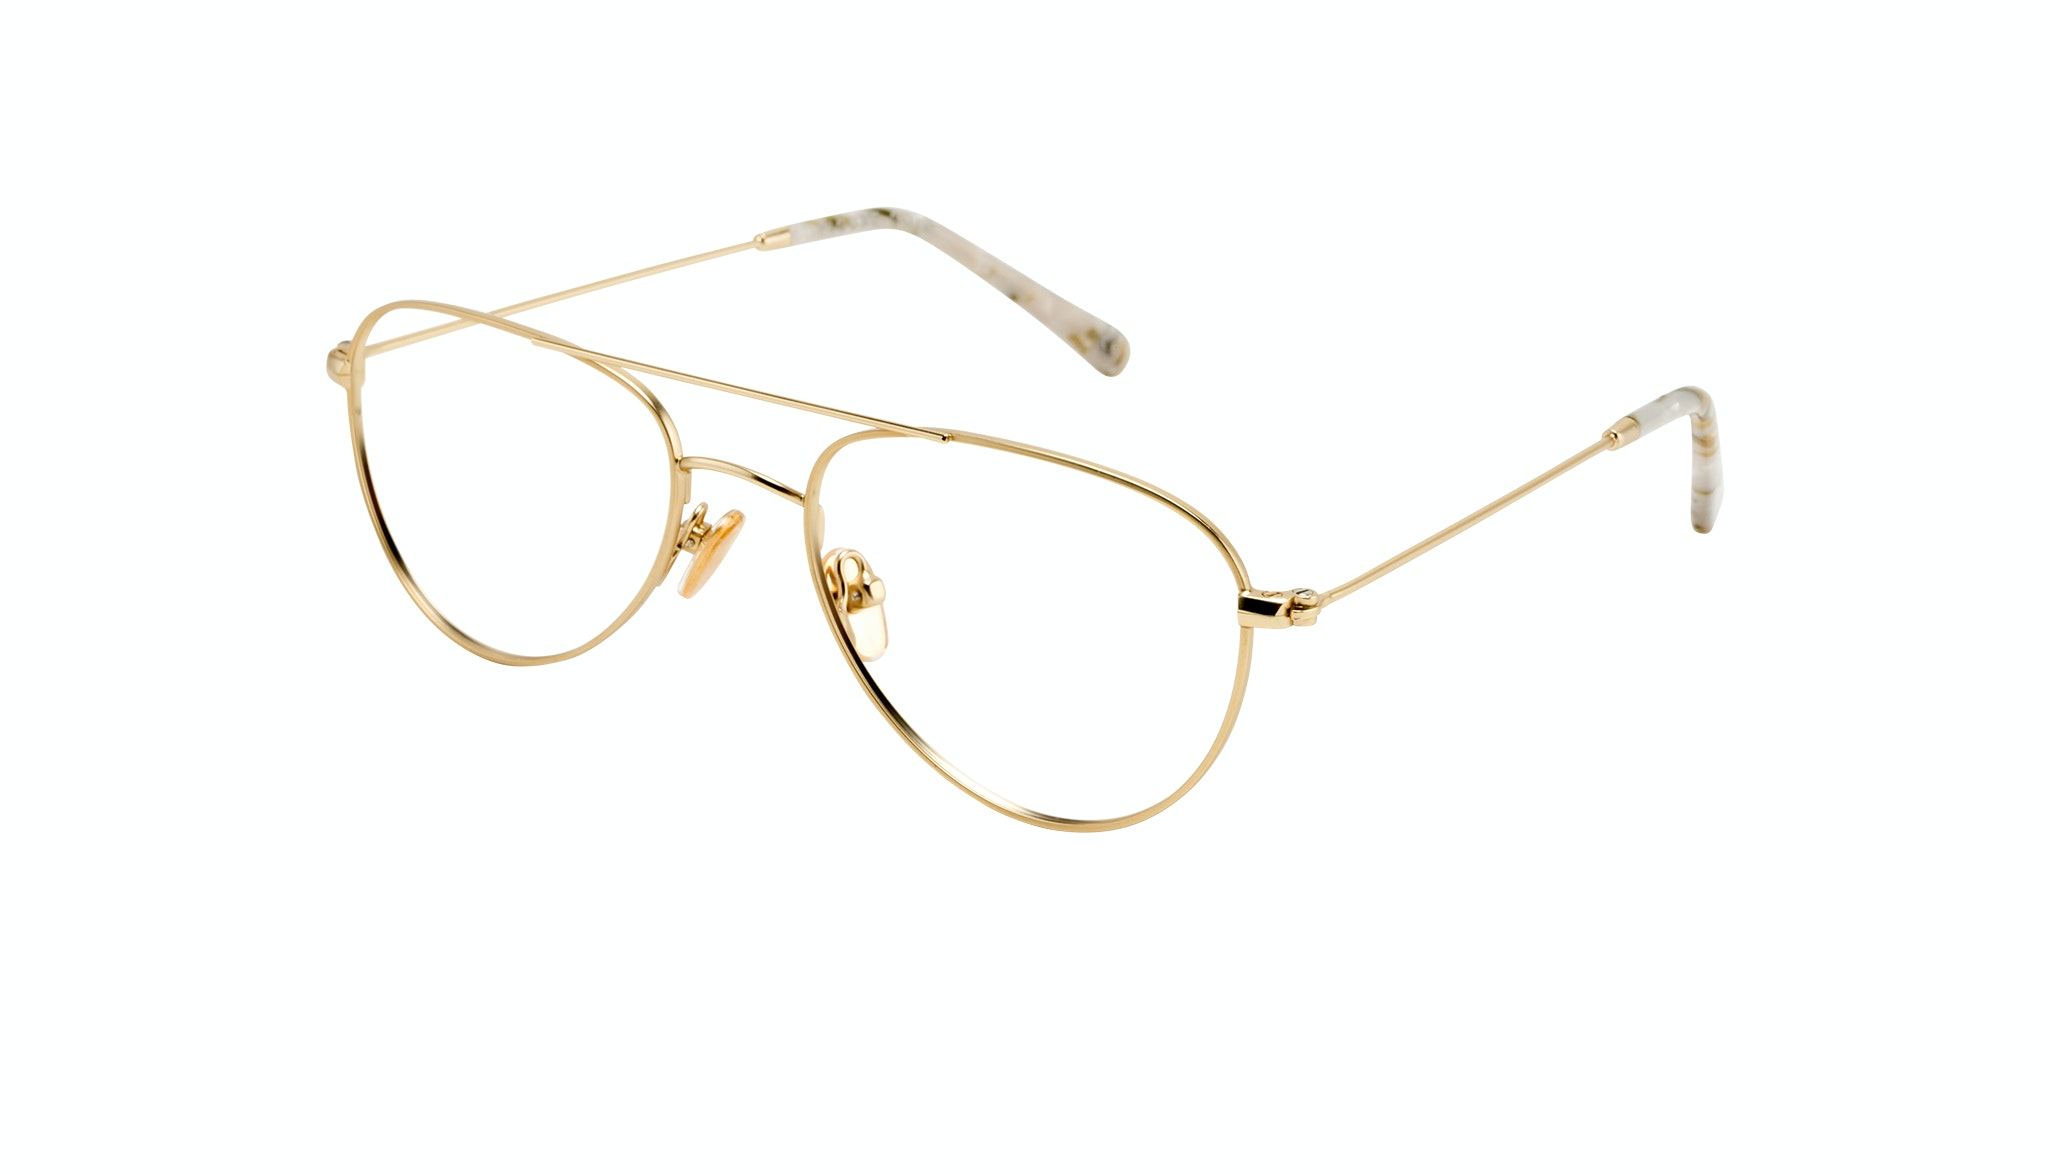 Affordable Fashion Glasses Aviator Eyeglasses Women Figure Gold Tilt